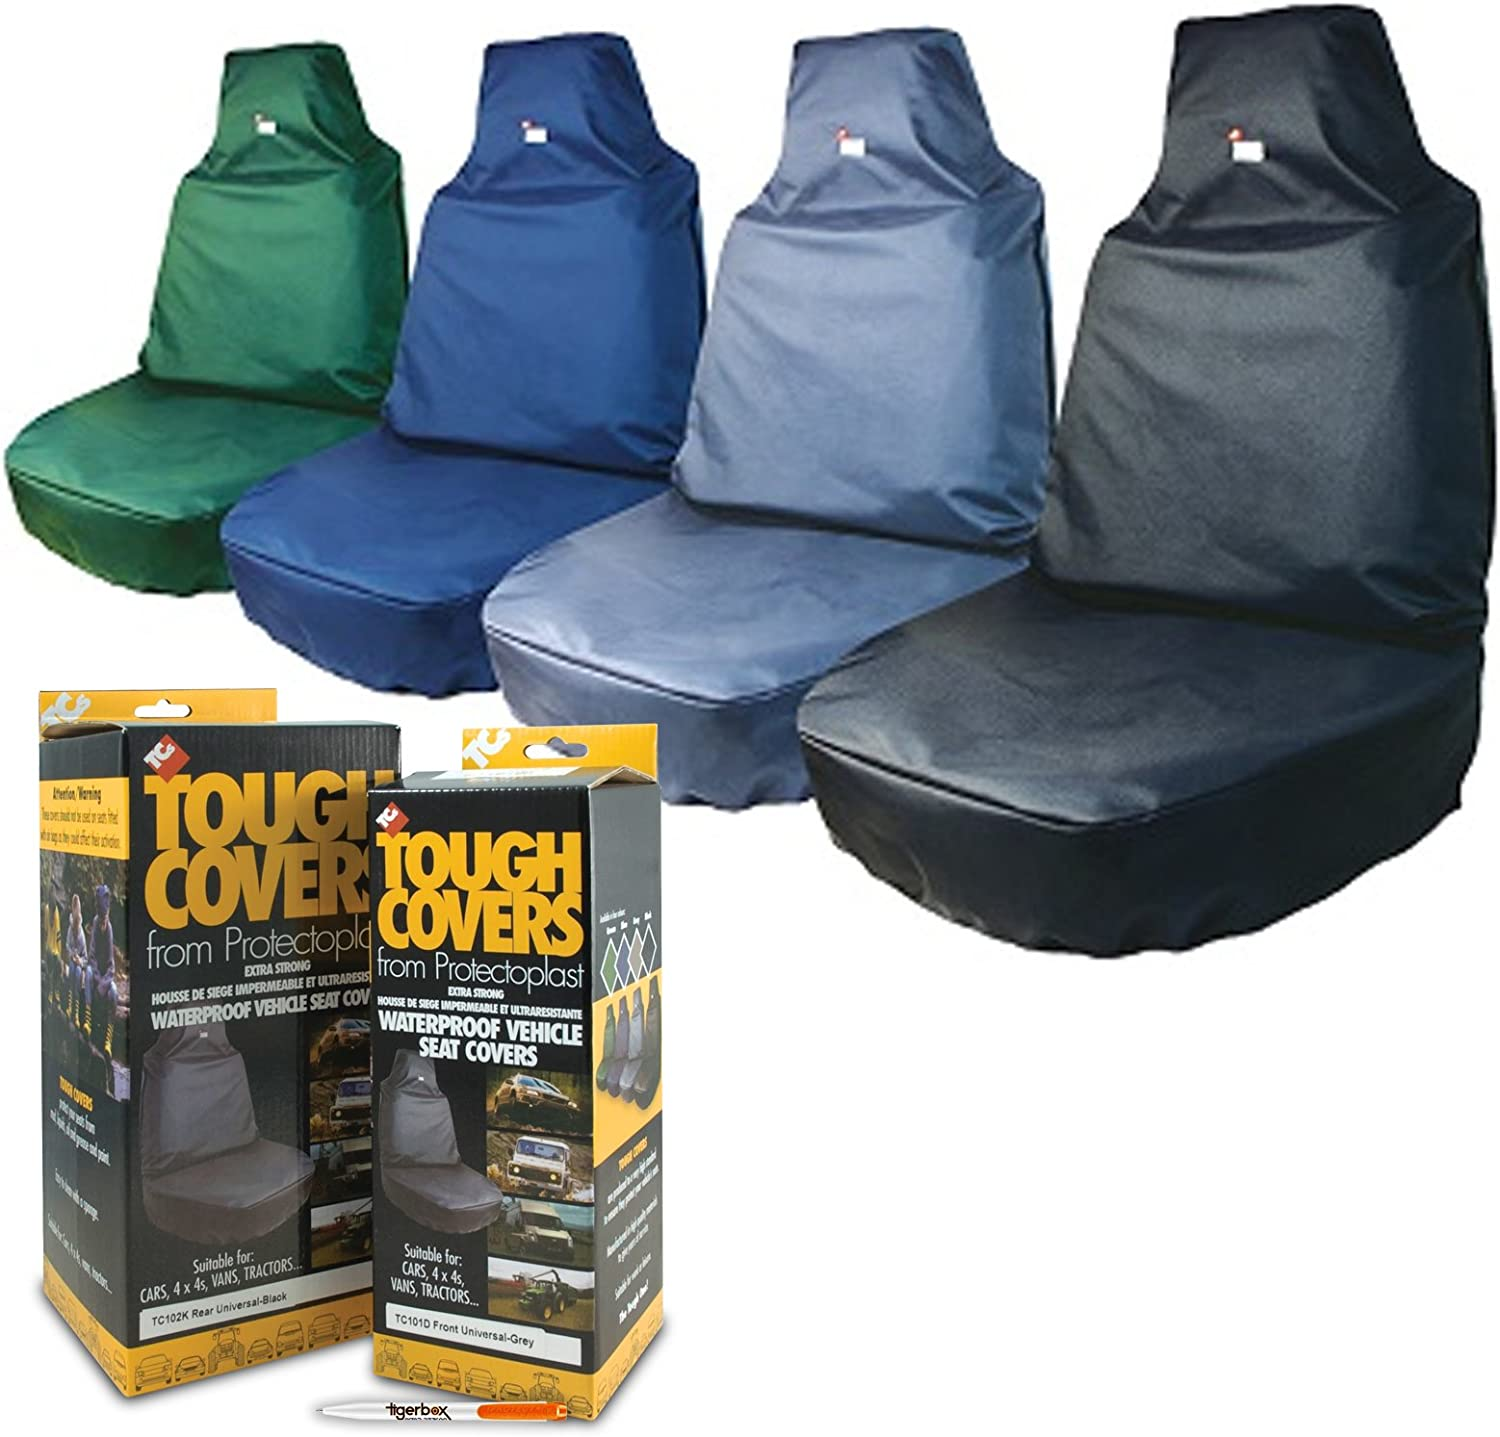 TigerBox TOUGH COVERS Heavy Duty Blue Extra Strong Waterproof Large Tractor Seat Cover for your Vehicle Antibacterial Pen.